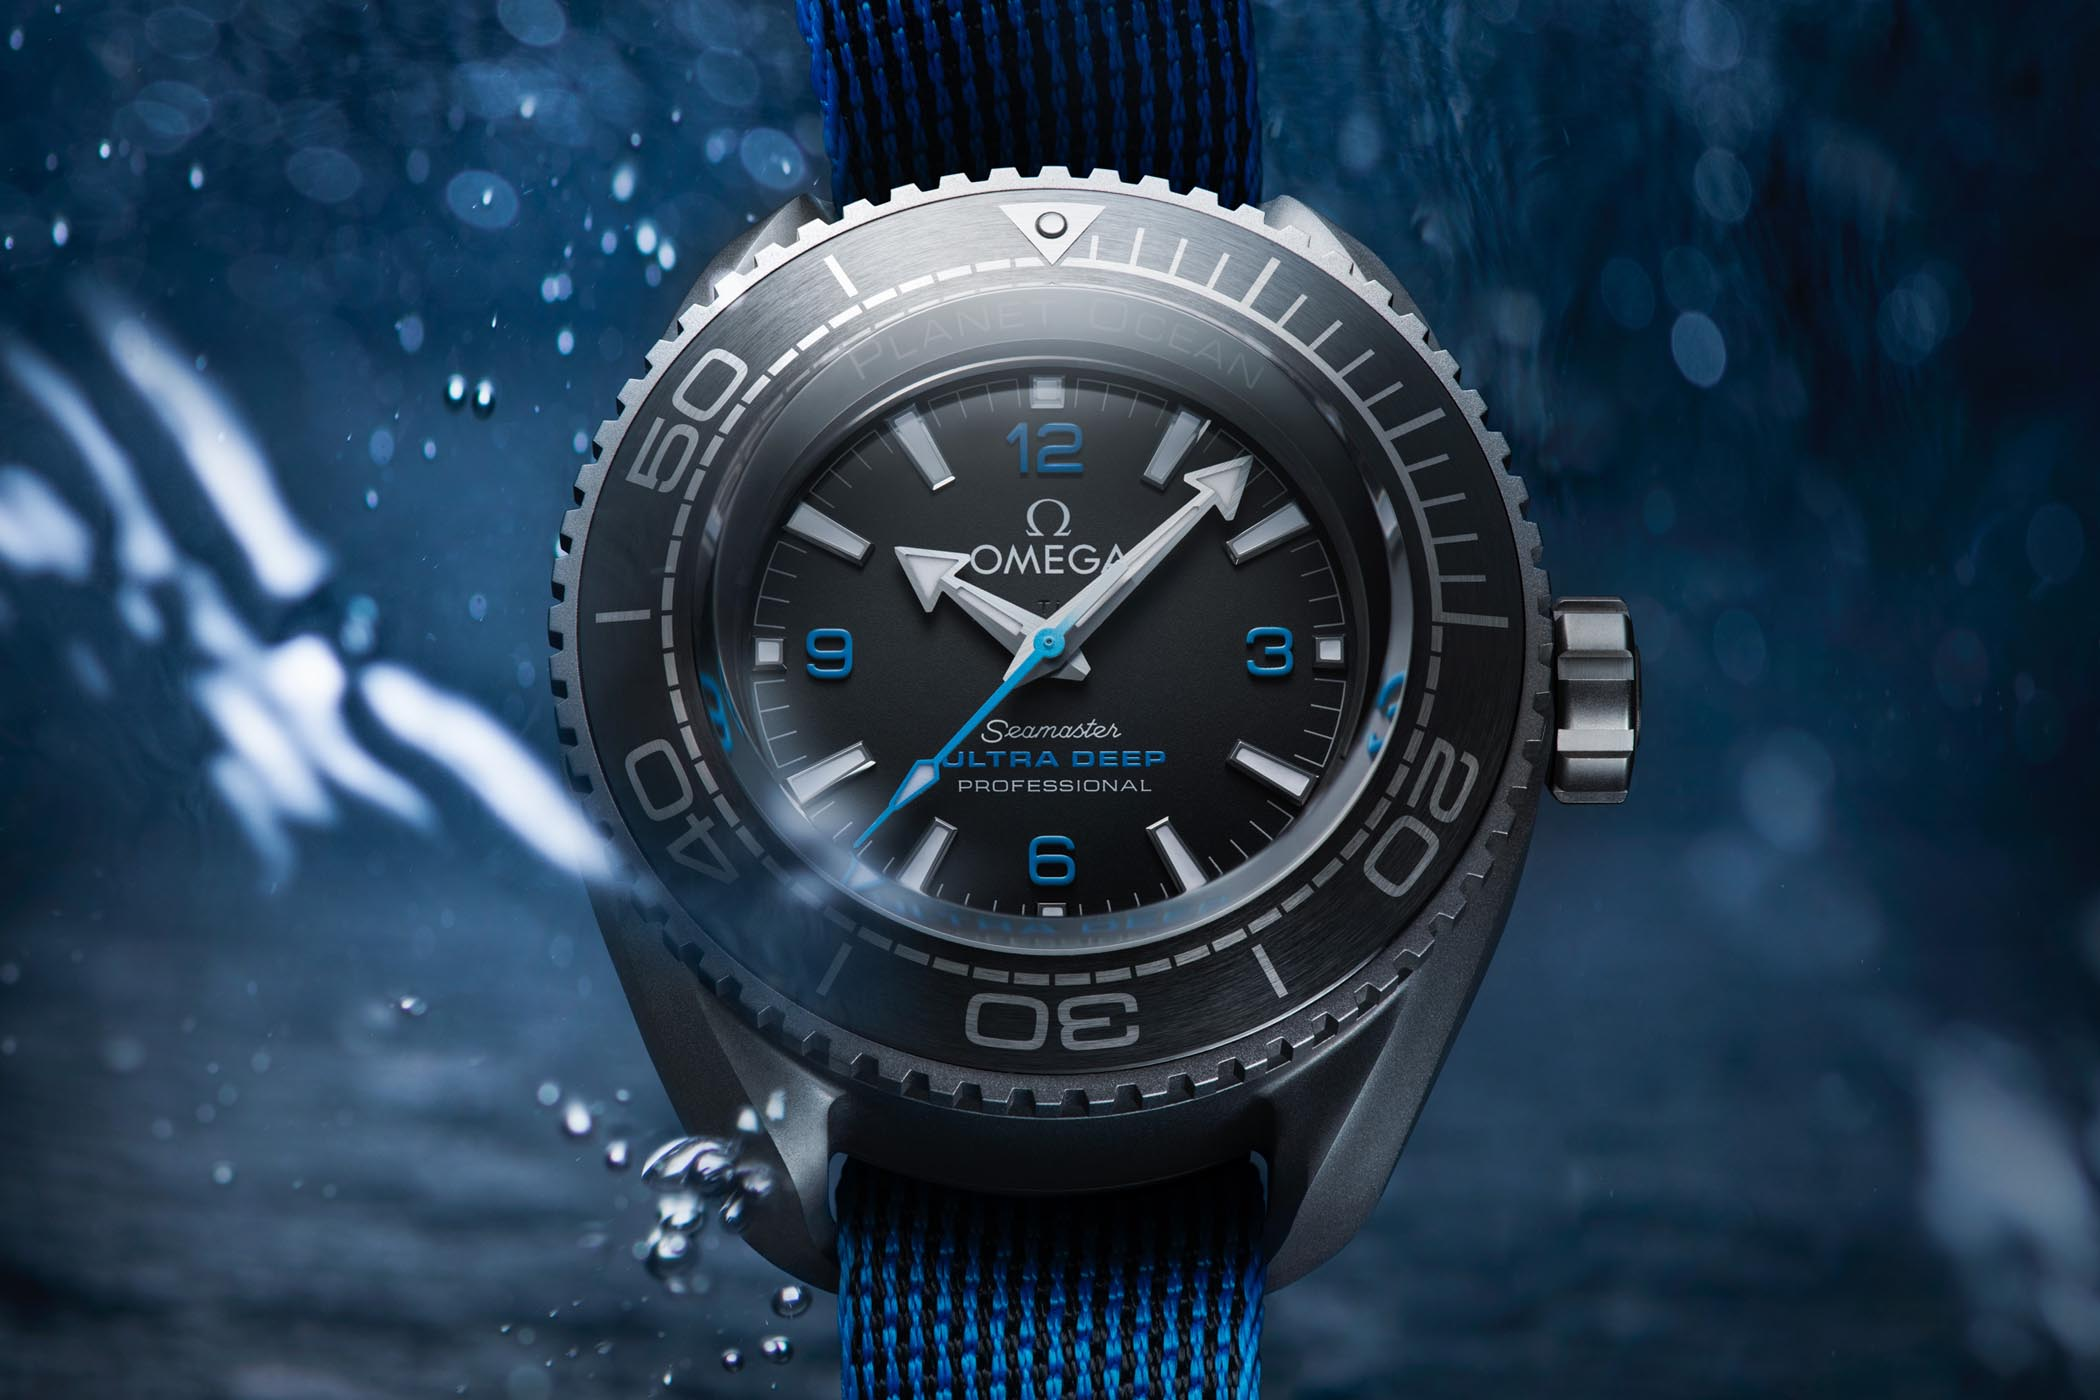 Omega Seamaster Planet Ocean Ultra Deep Professional - world record dive watch 15000m